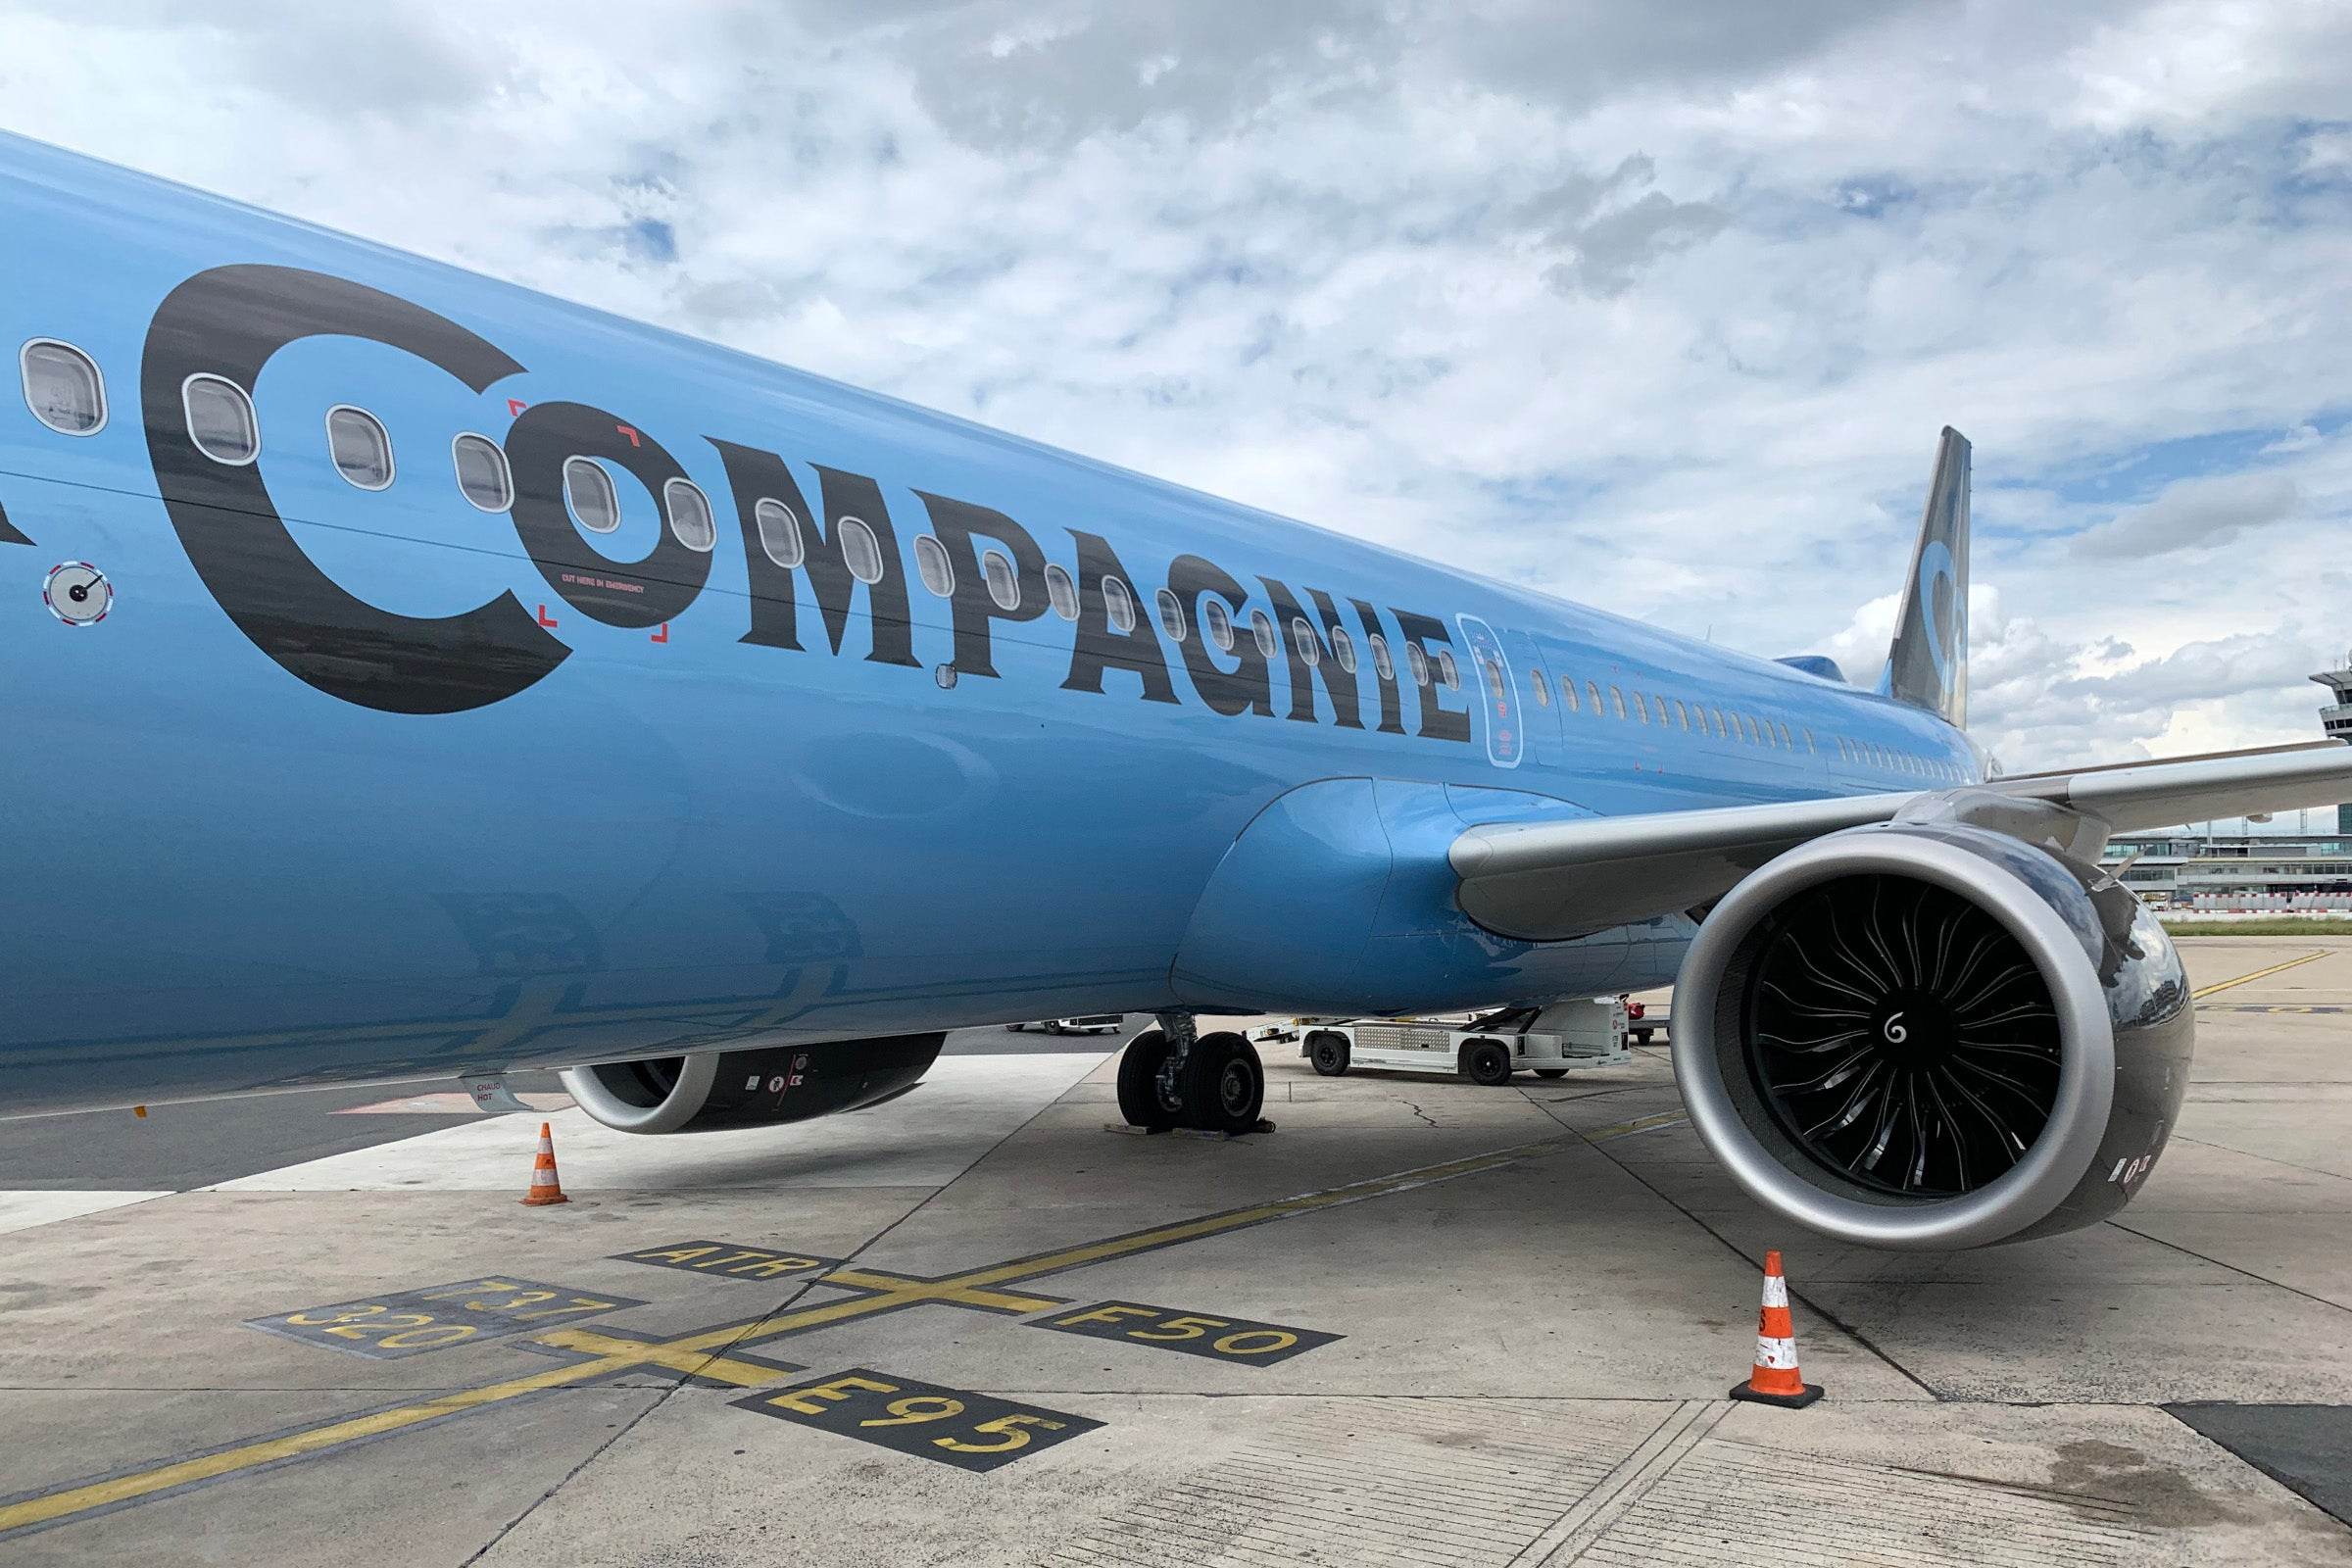 La Compagnie, an all-business-class airline, just announced 2 new international routes - The Points Guy